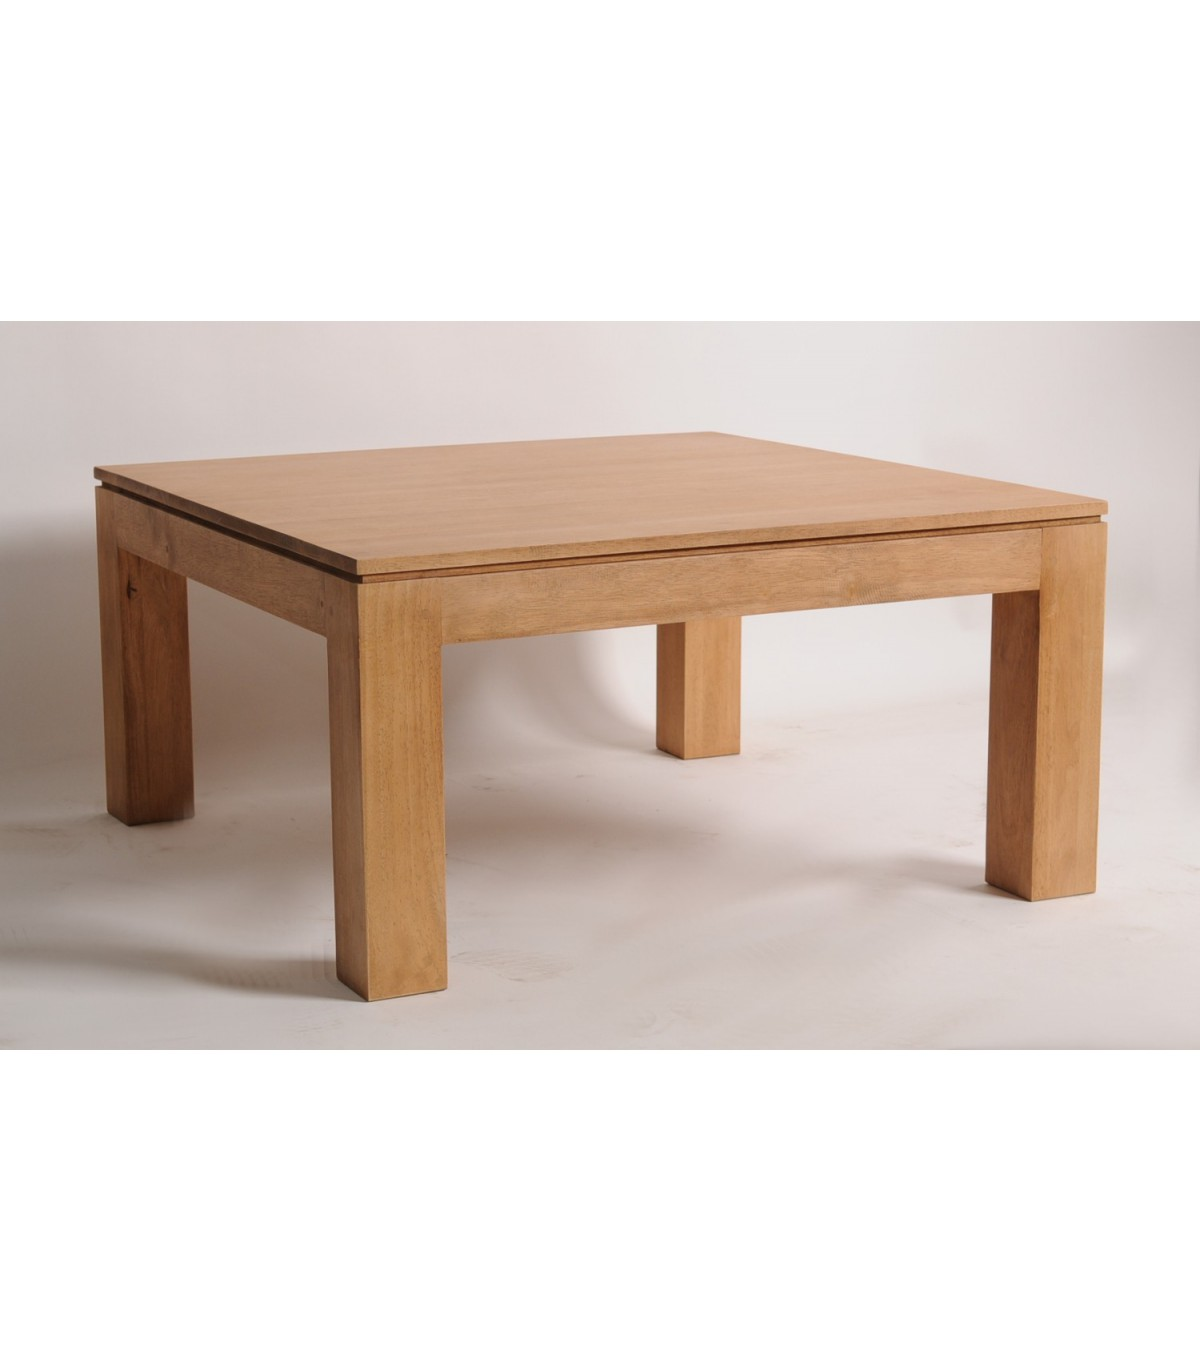 Table basse carr bois meuble hevea naturel - Table basse carre bois ...